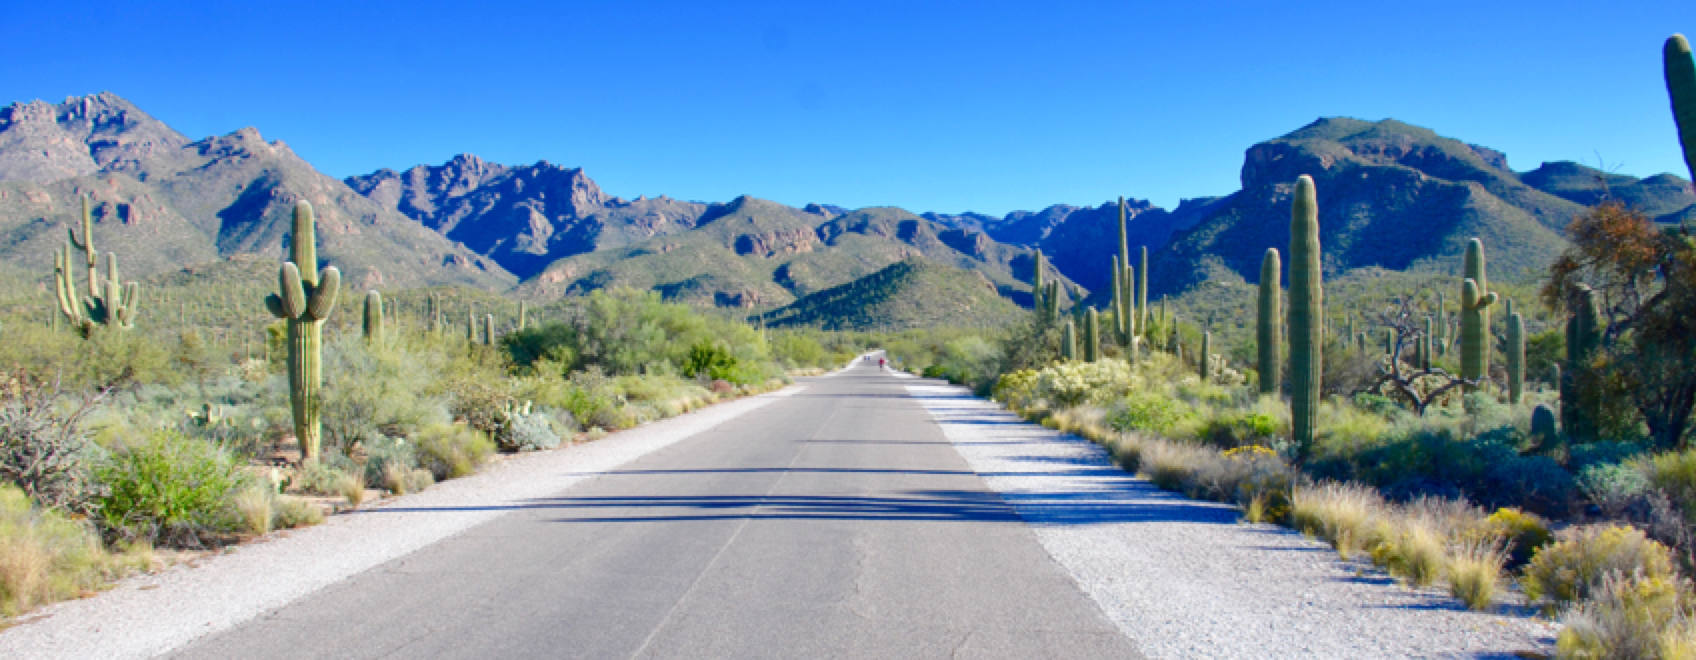 Road from the 2019 INMR WORLD CONGRESS to the Sabino Canyon 2019 INMR WORLD CONGRESS Update on the 2019 INMR WORLD CONGRESS, Oct 20-23, 2019: Westin La Paloma Tucson, Arizona This road closed to car traffic brings visitors on foot into the heart of Sabino Canyon